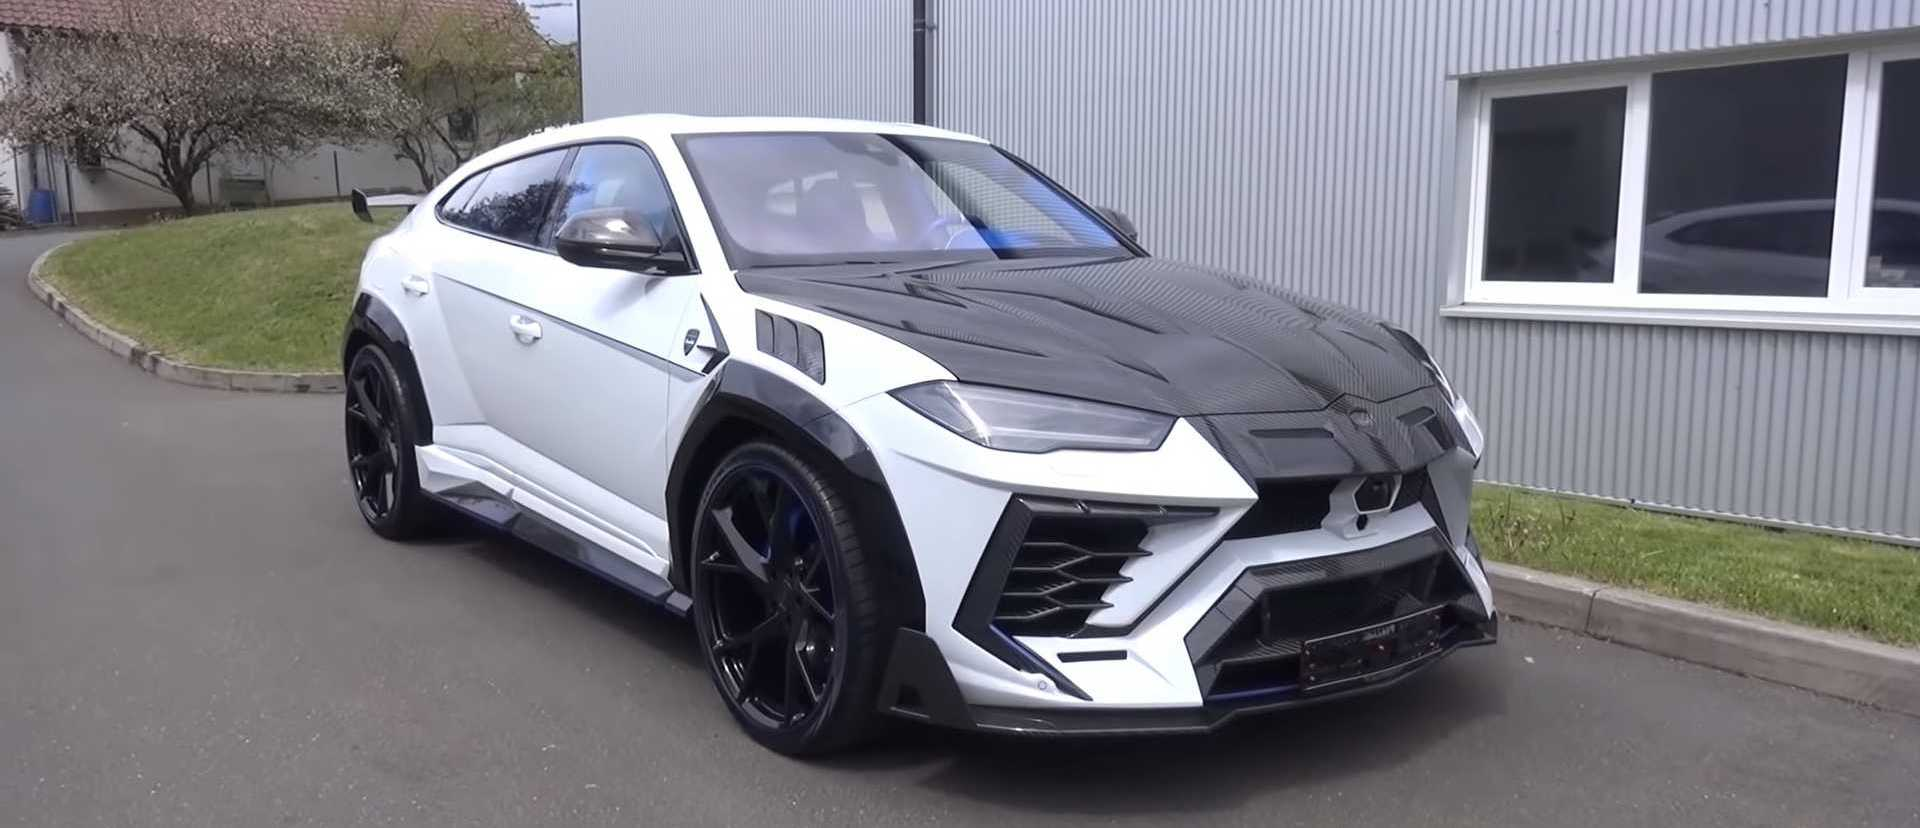 Take A Tour Of The Wild Mansory Venatus Lamborghini Urus